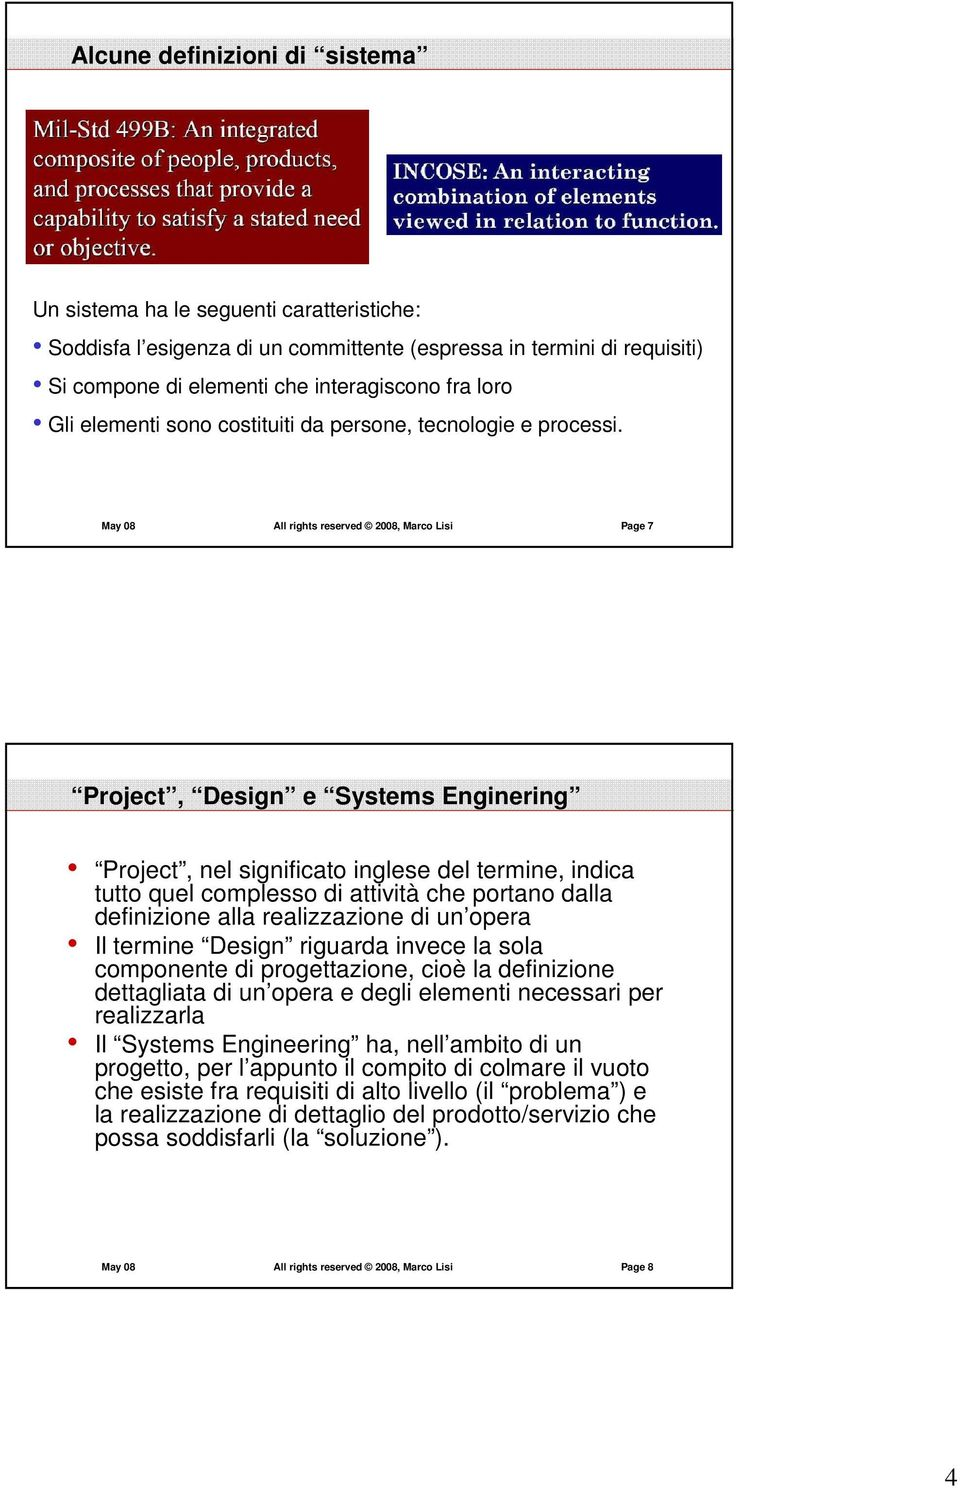 May 08 All rights reserved 2008, Marco Lisi Page 7 Project, Design e Systems Enginering Project, nel significato inglese del termine, indica tutto quel complesso di attività che portano dalla